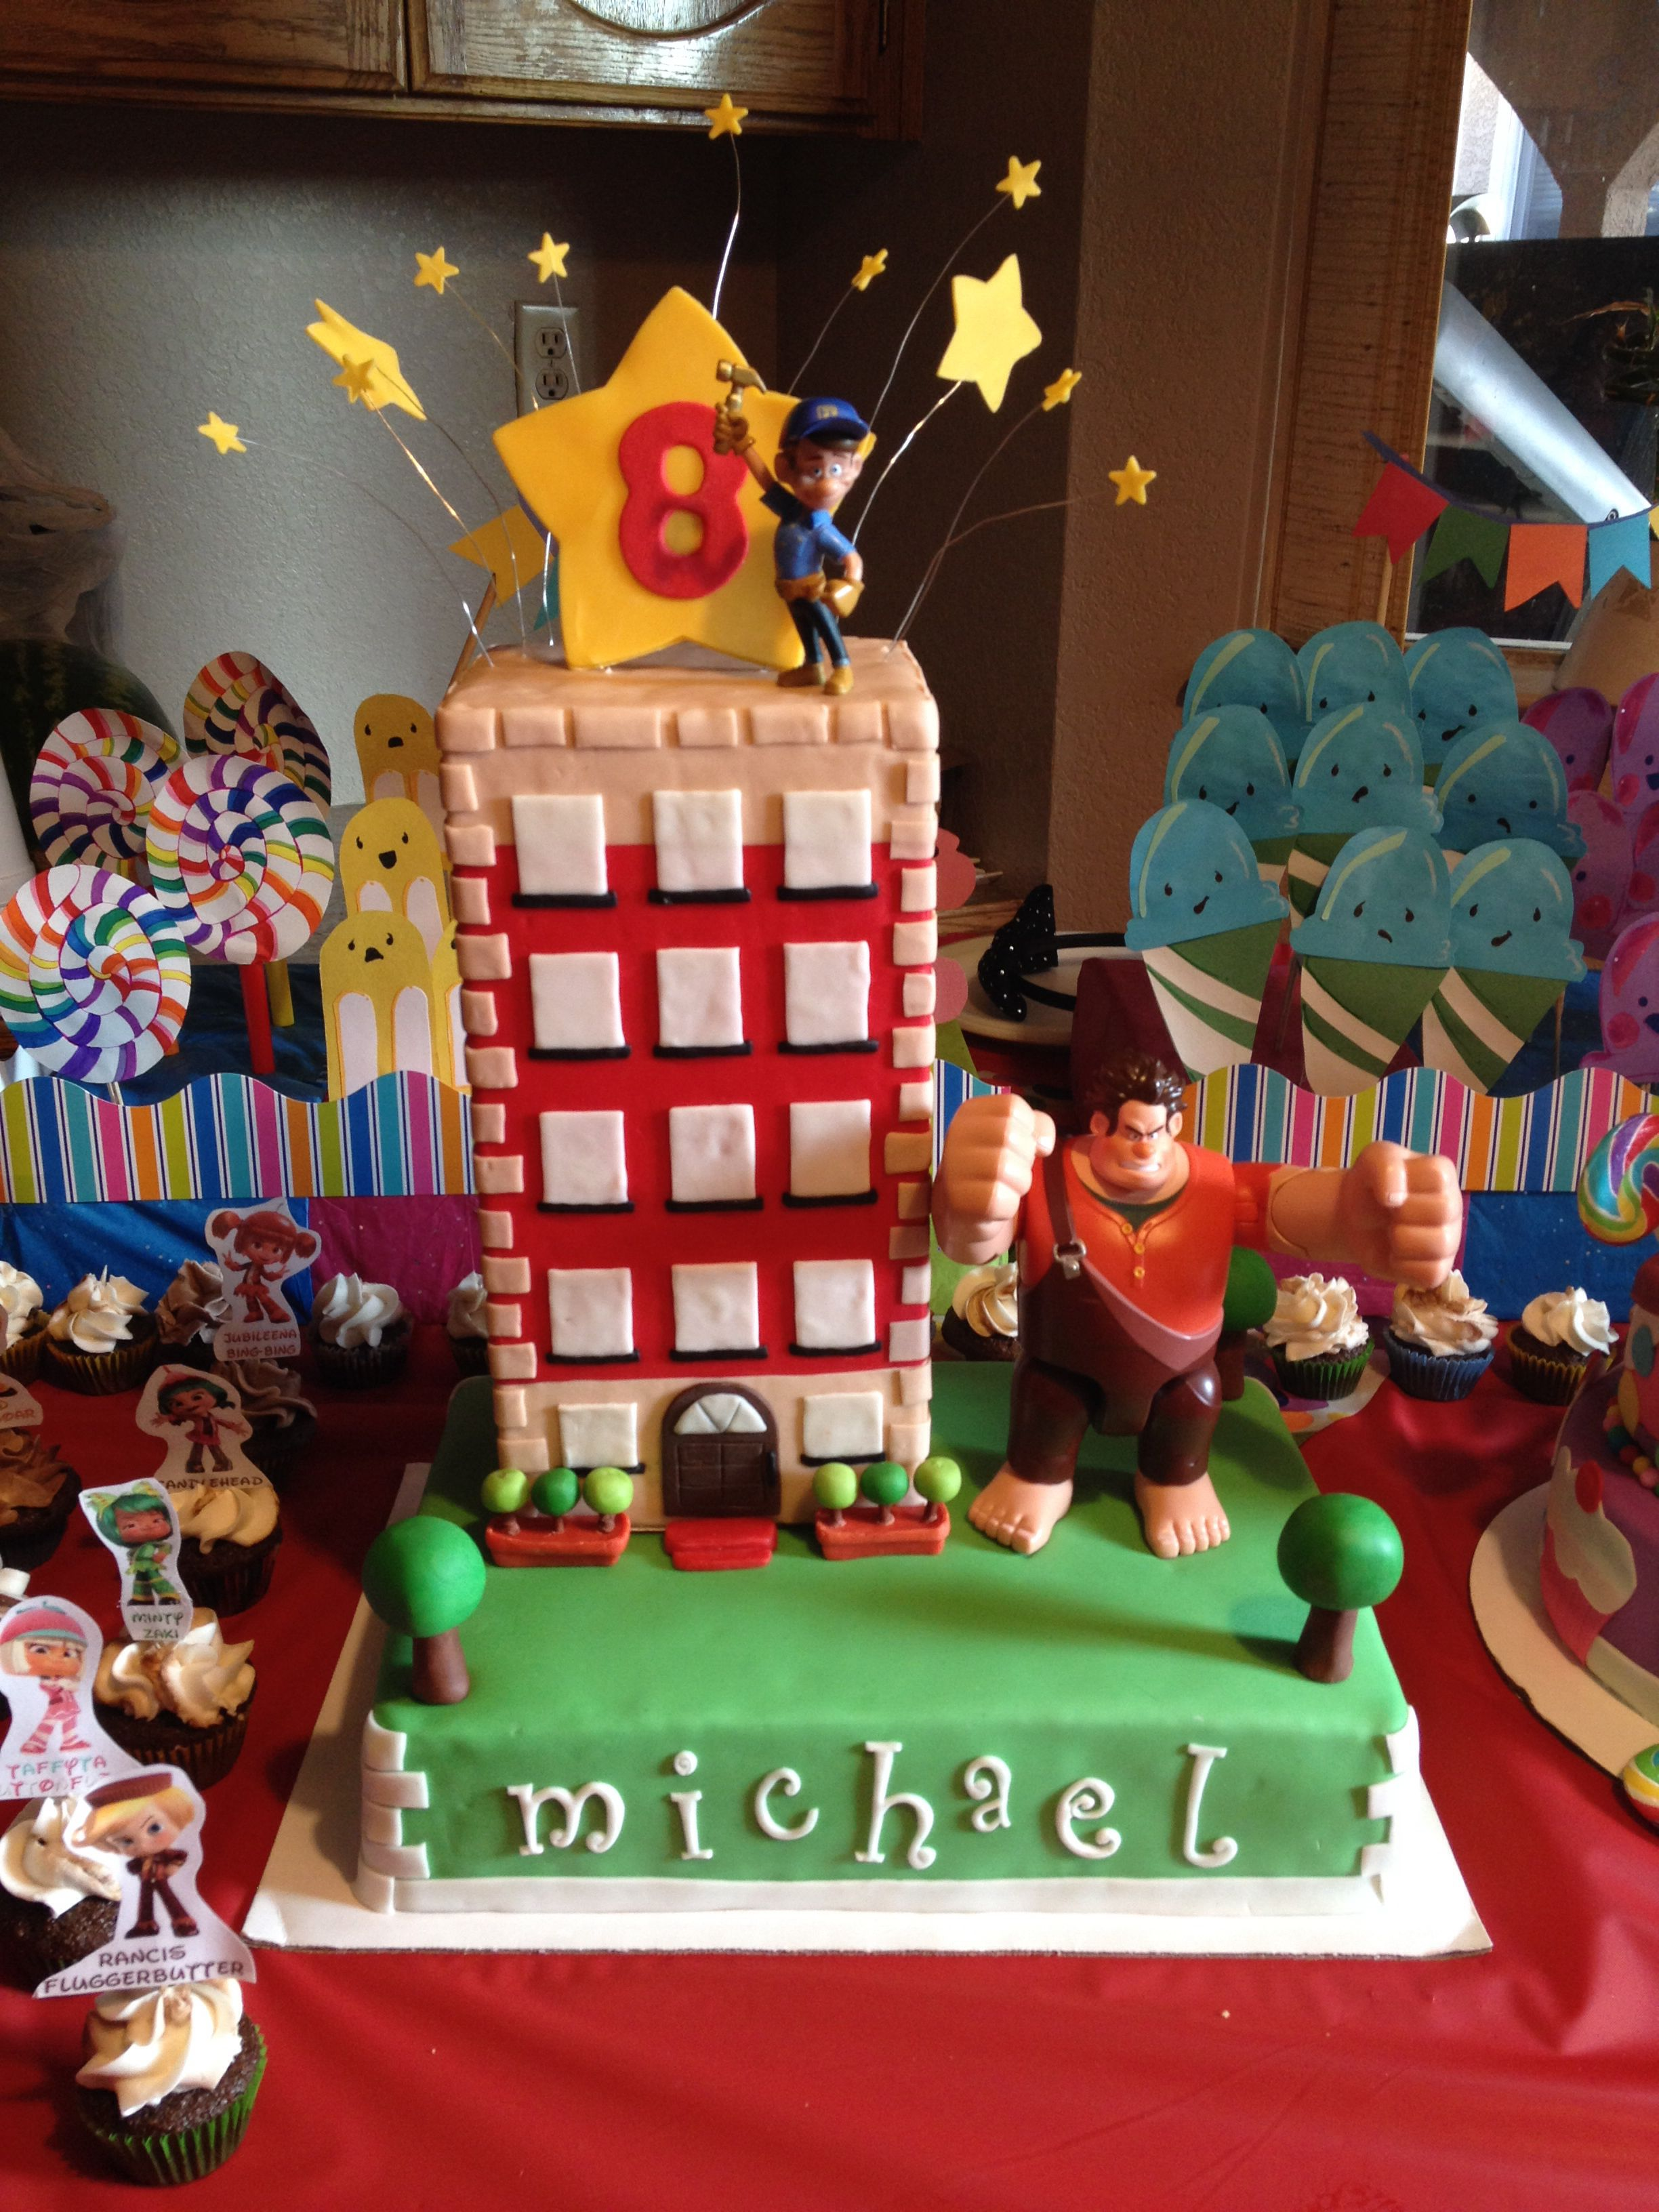 Wreck It Ralph Birthday Cake Was Made With So Much Love For My